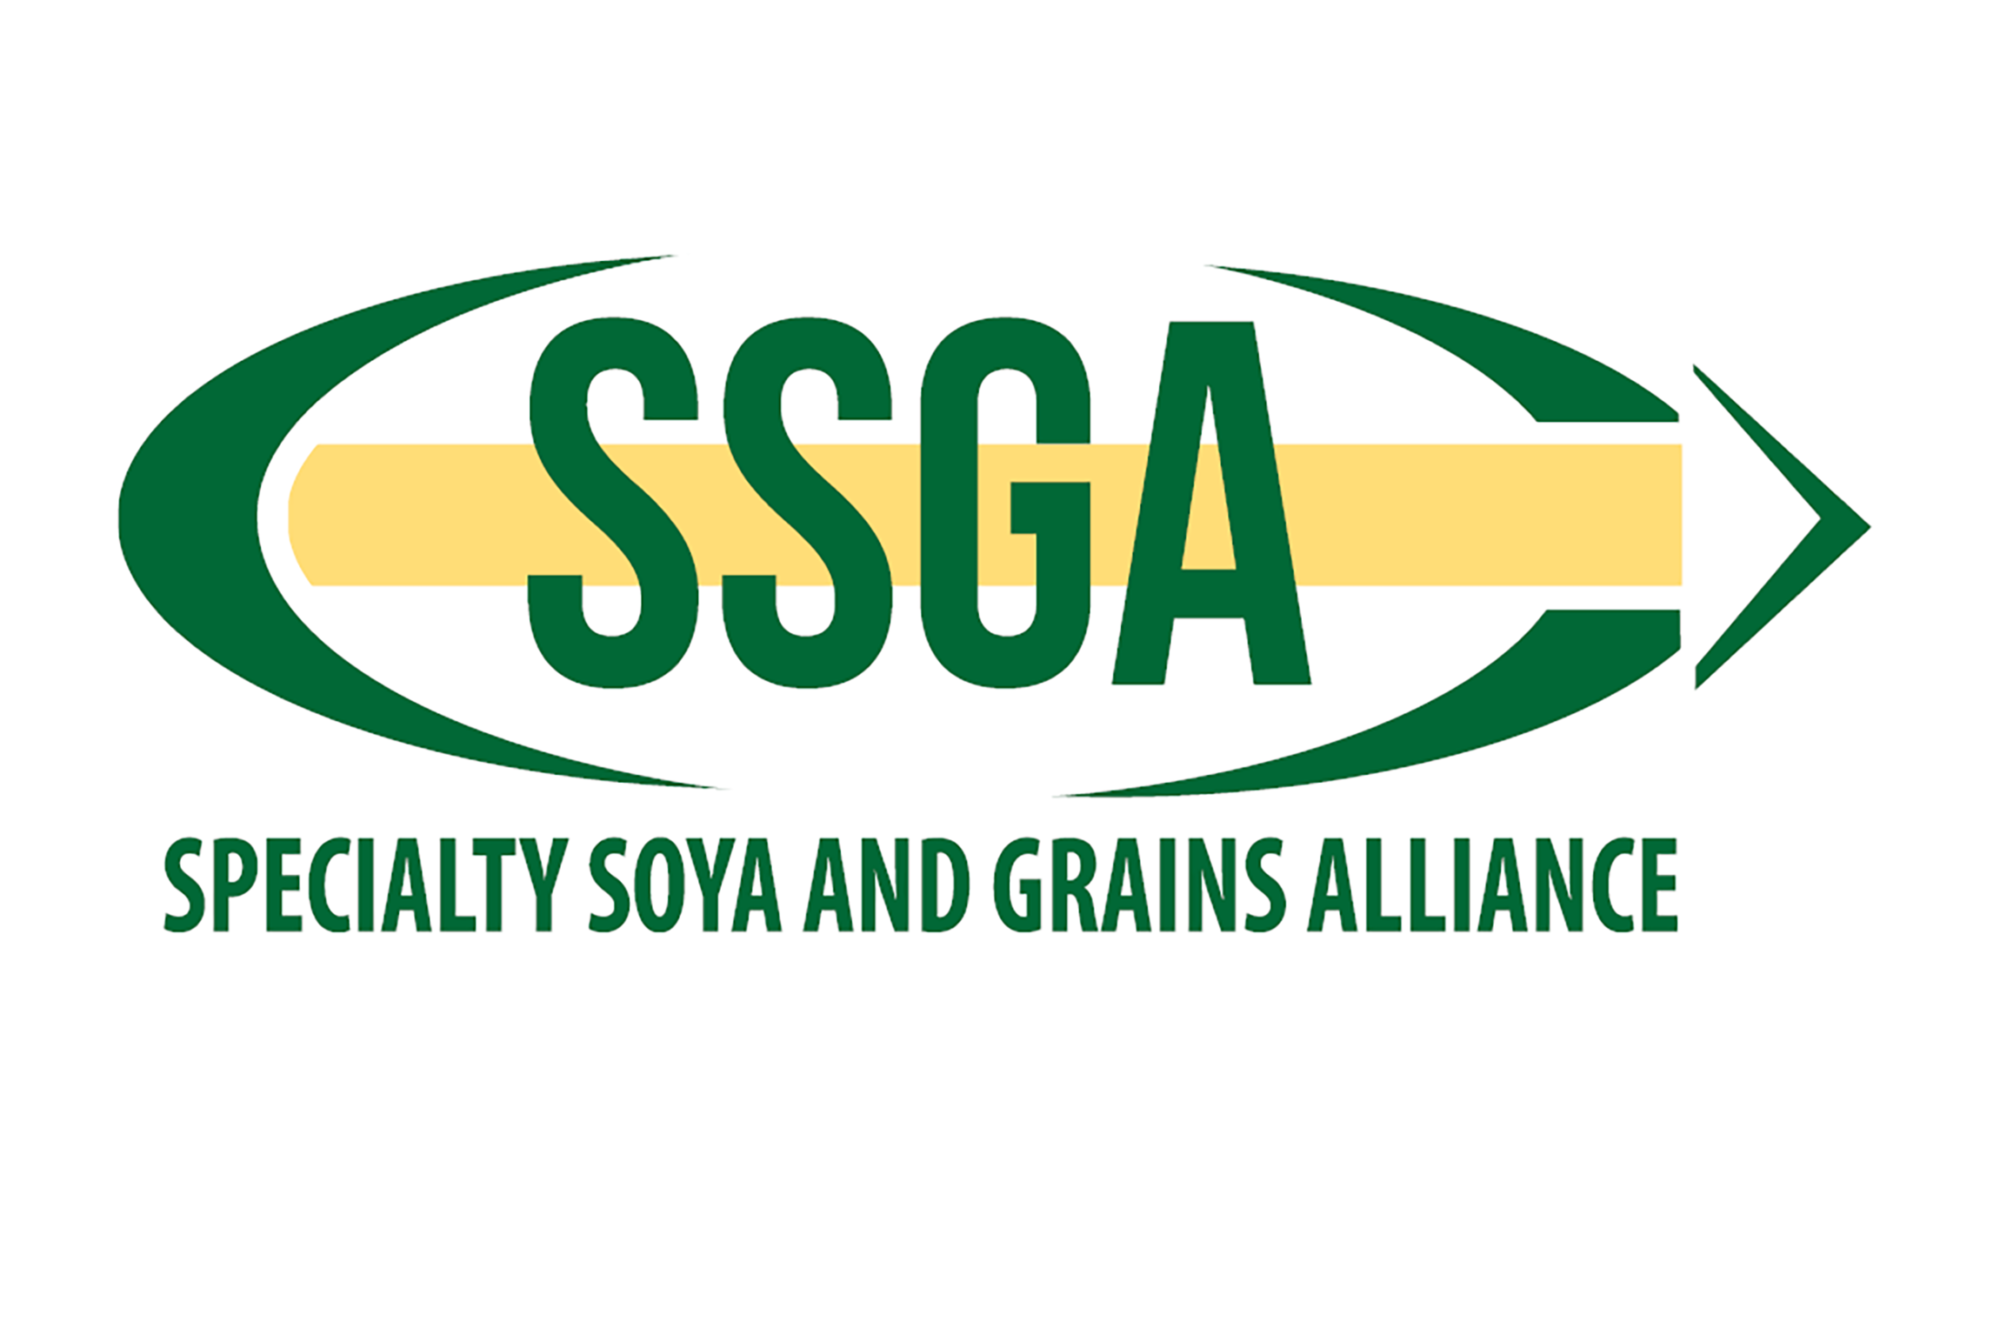 News & Events - Specialty Soya and Grains Alliance